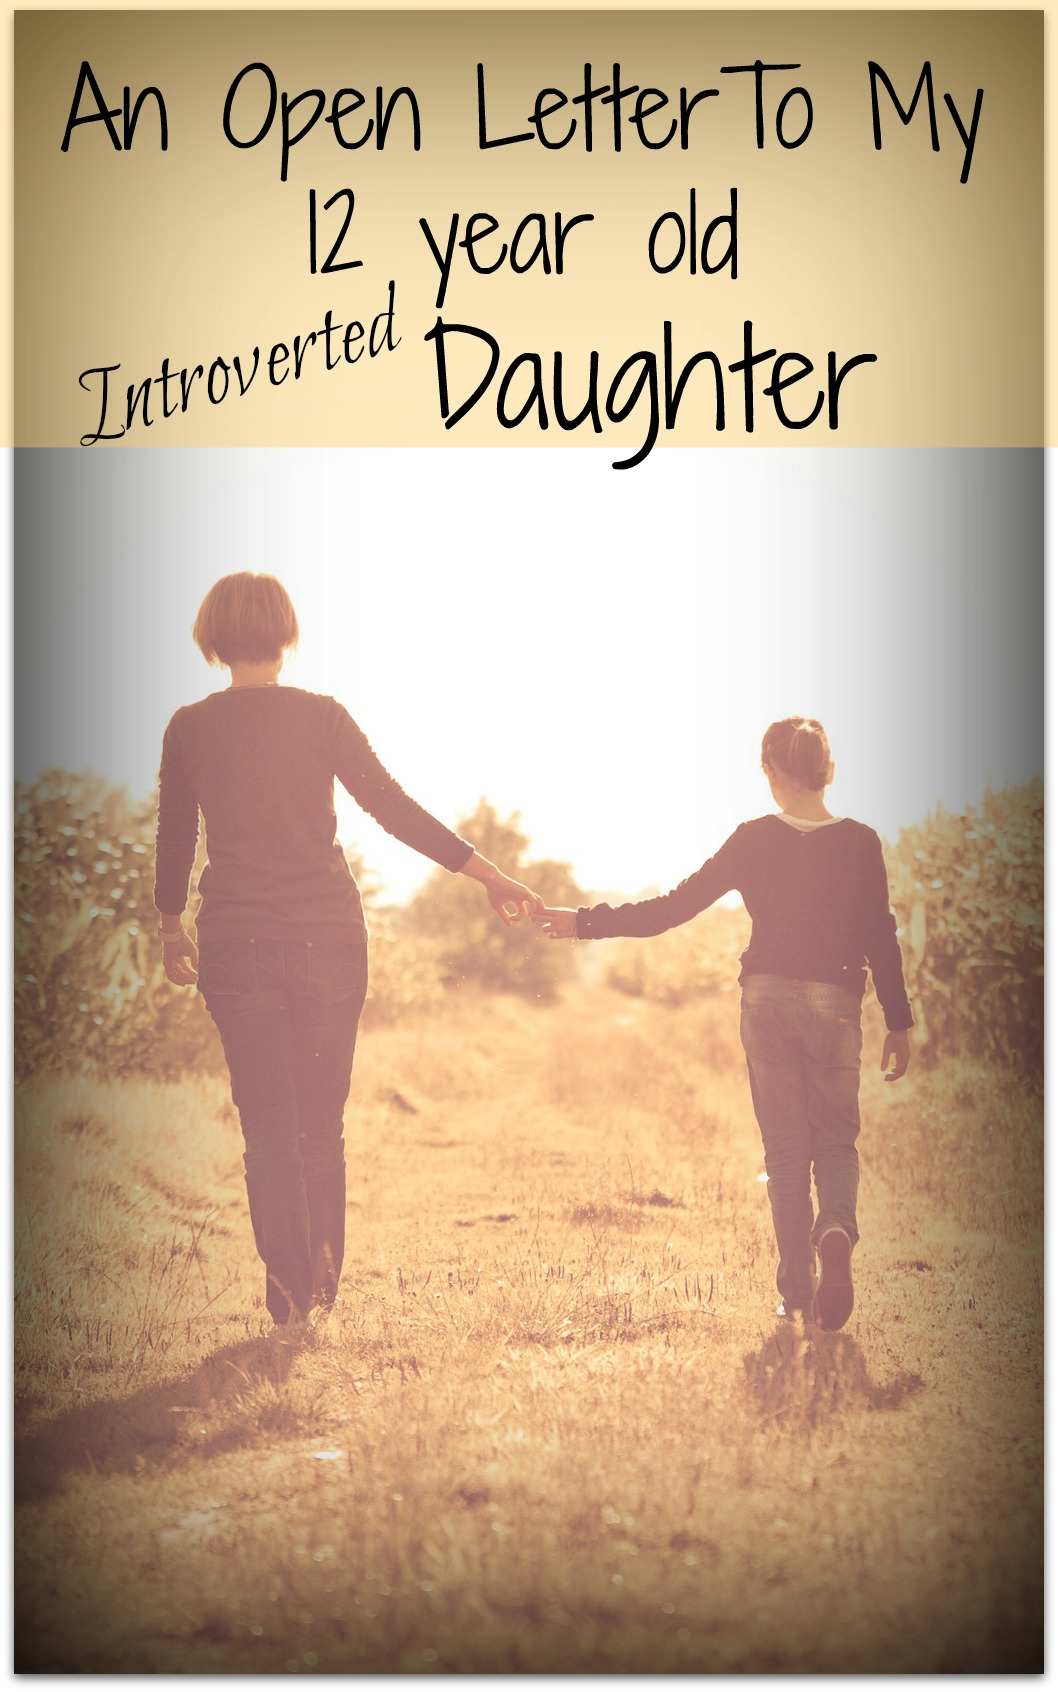 An Open Letter To My 12 Year Old Daughter Leap Of Faith